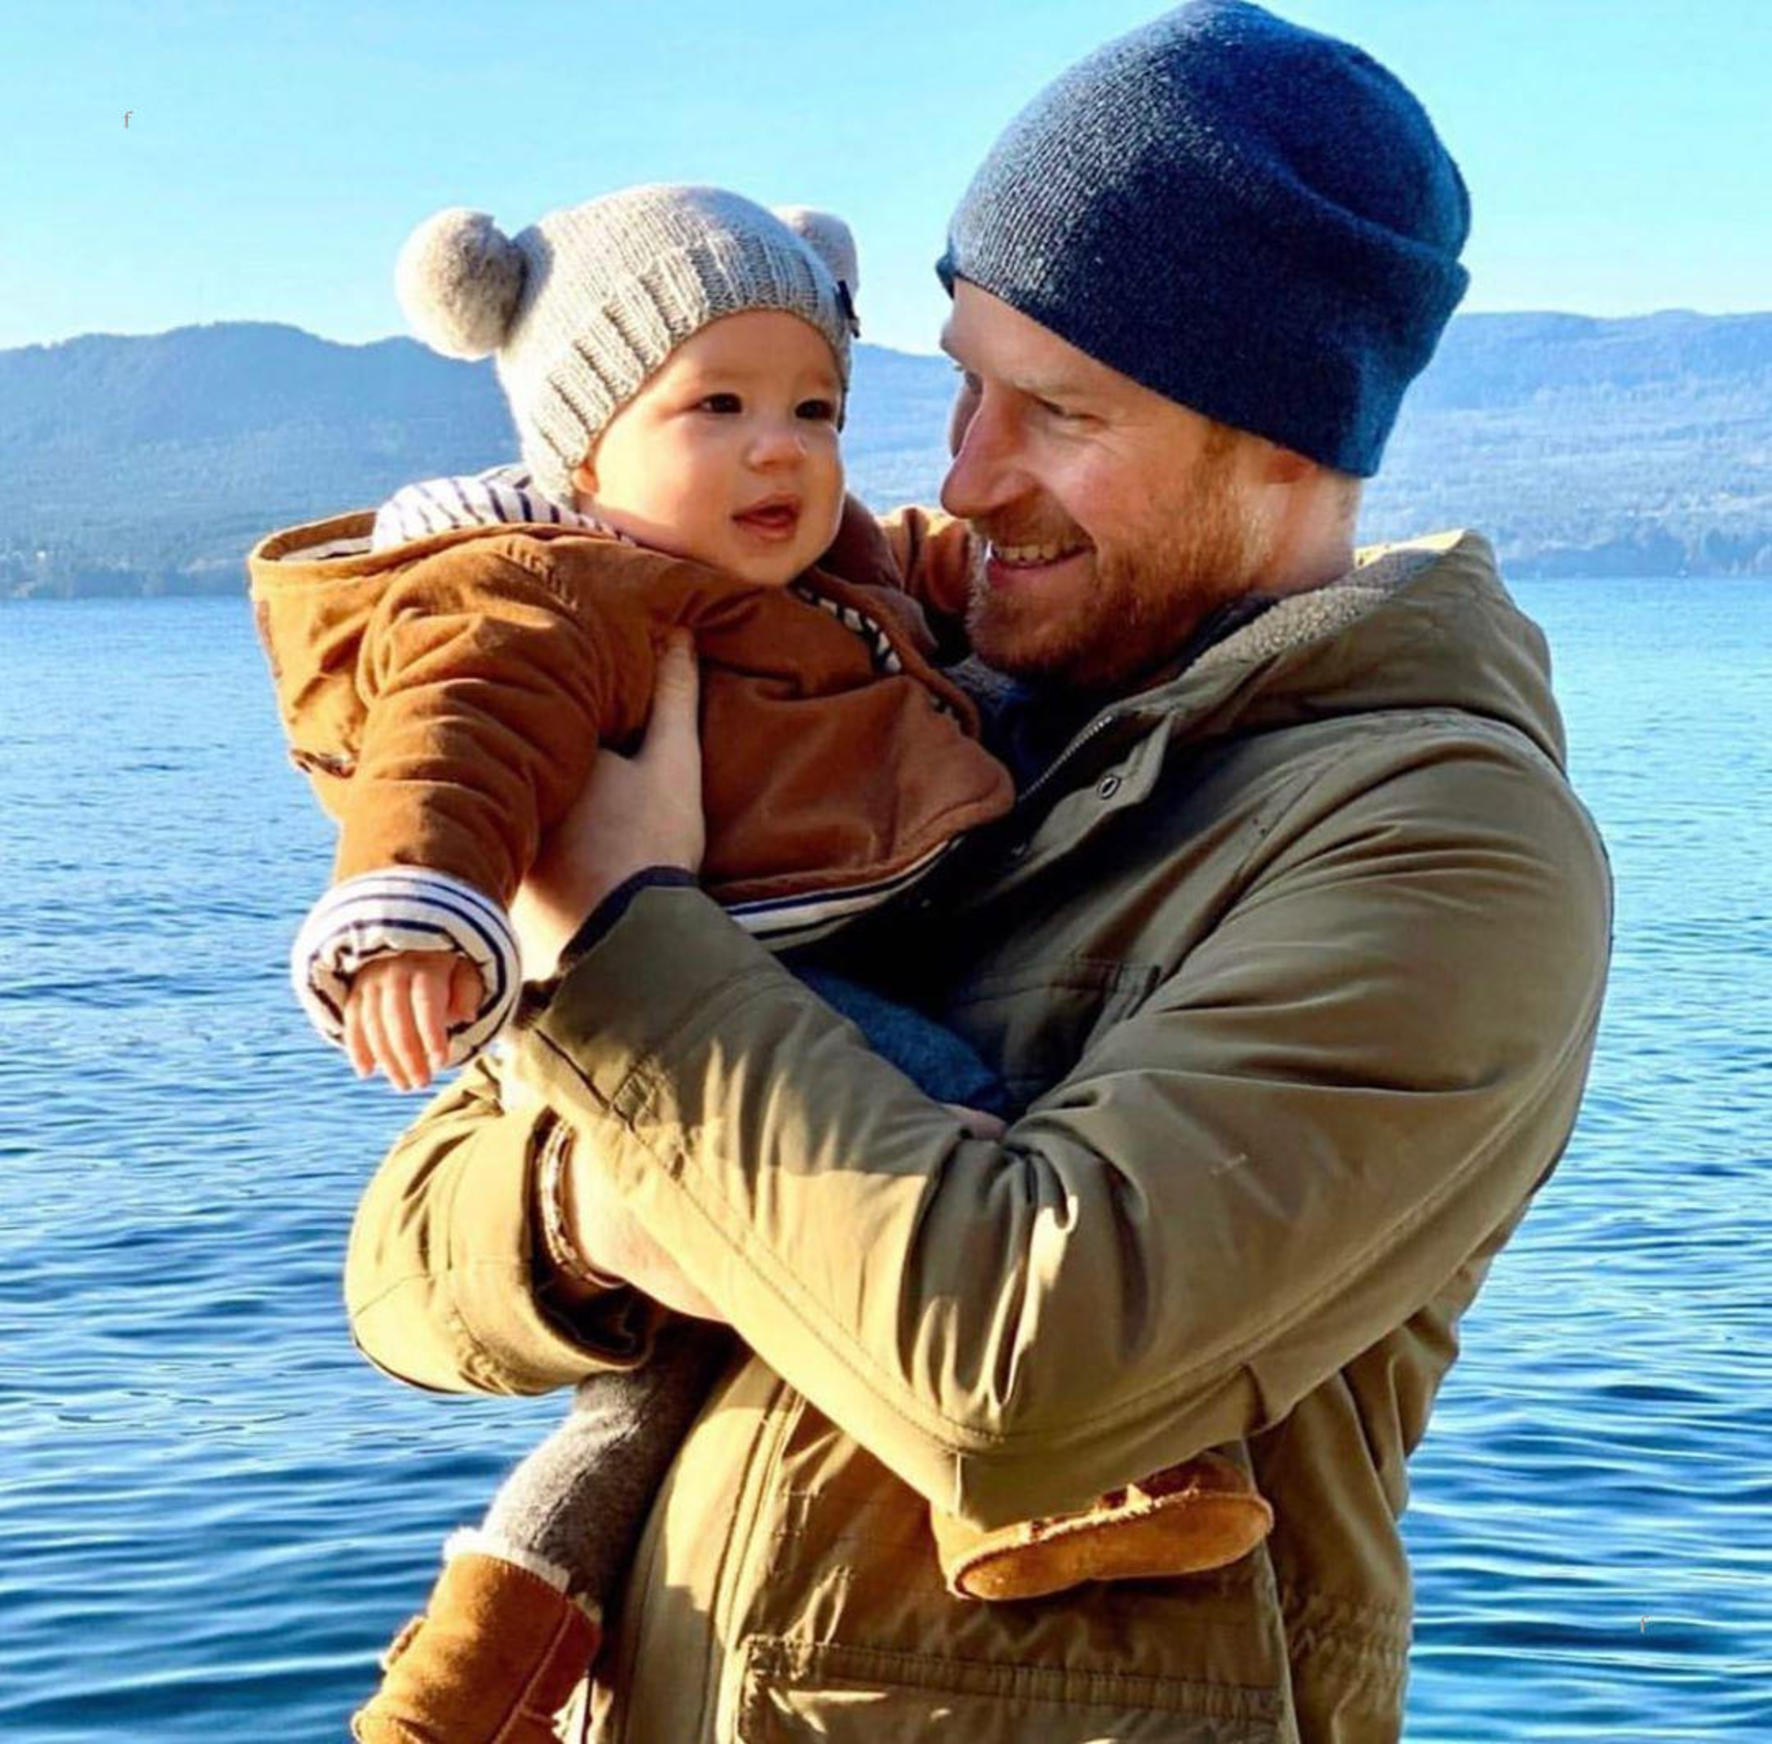 Meghan Markle (hrhofsussex / 31.12.2019): NEW ARCHIE PHOTO!! How sweet is this!!? Meghan and Harry just released this sweet photograph of Harry & Archie! Im guessing this was taken by Meghan during their Holiday on Vancouver Island in British Columbia! He is the cutest little thing and it looks like he has Megs eyes and little button nose!, Image: 490987272, License: Rights-managed, Restrictions: , Model Release: no, Credit line: face to face / Face to Face / Profimedia